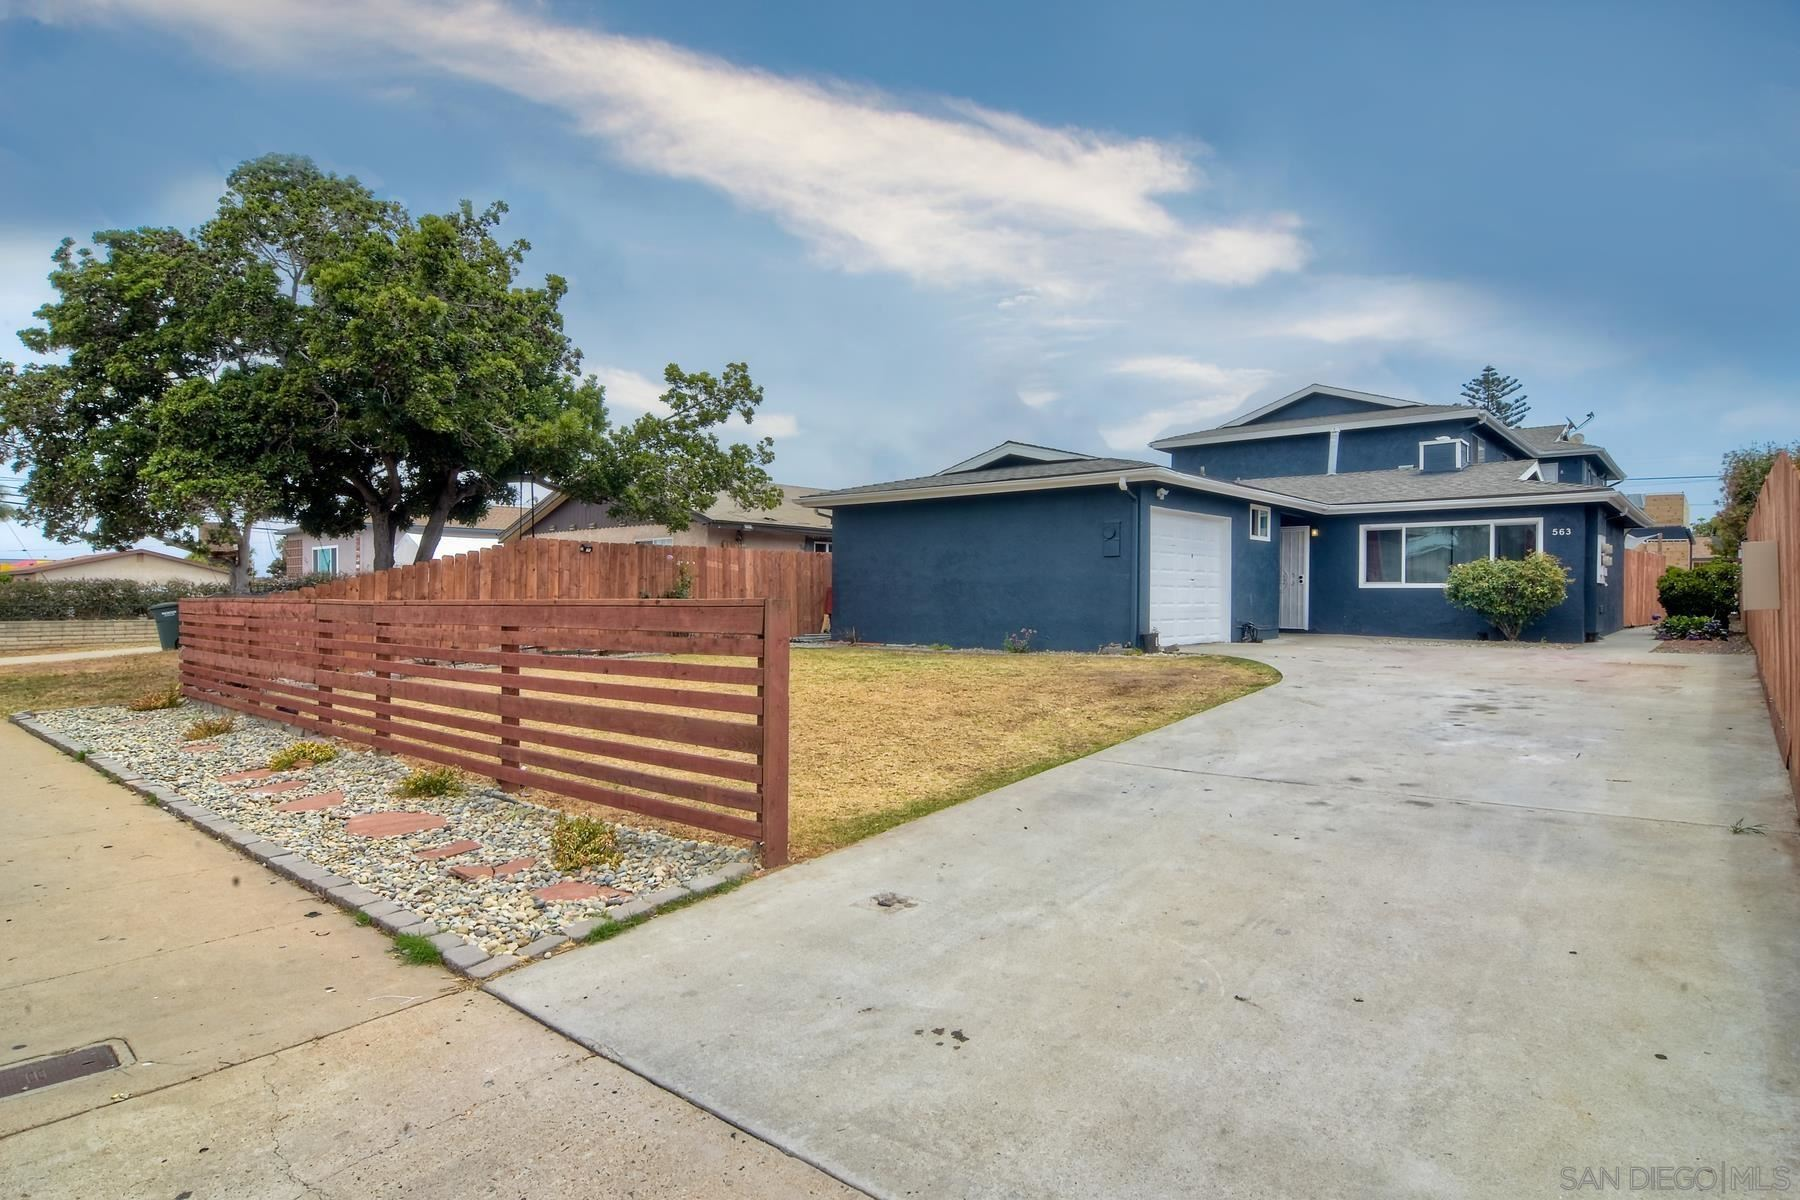 Photo of 563 Emory St, Imperial Beach, CA 91932 (MLS # 210018790)